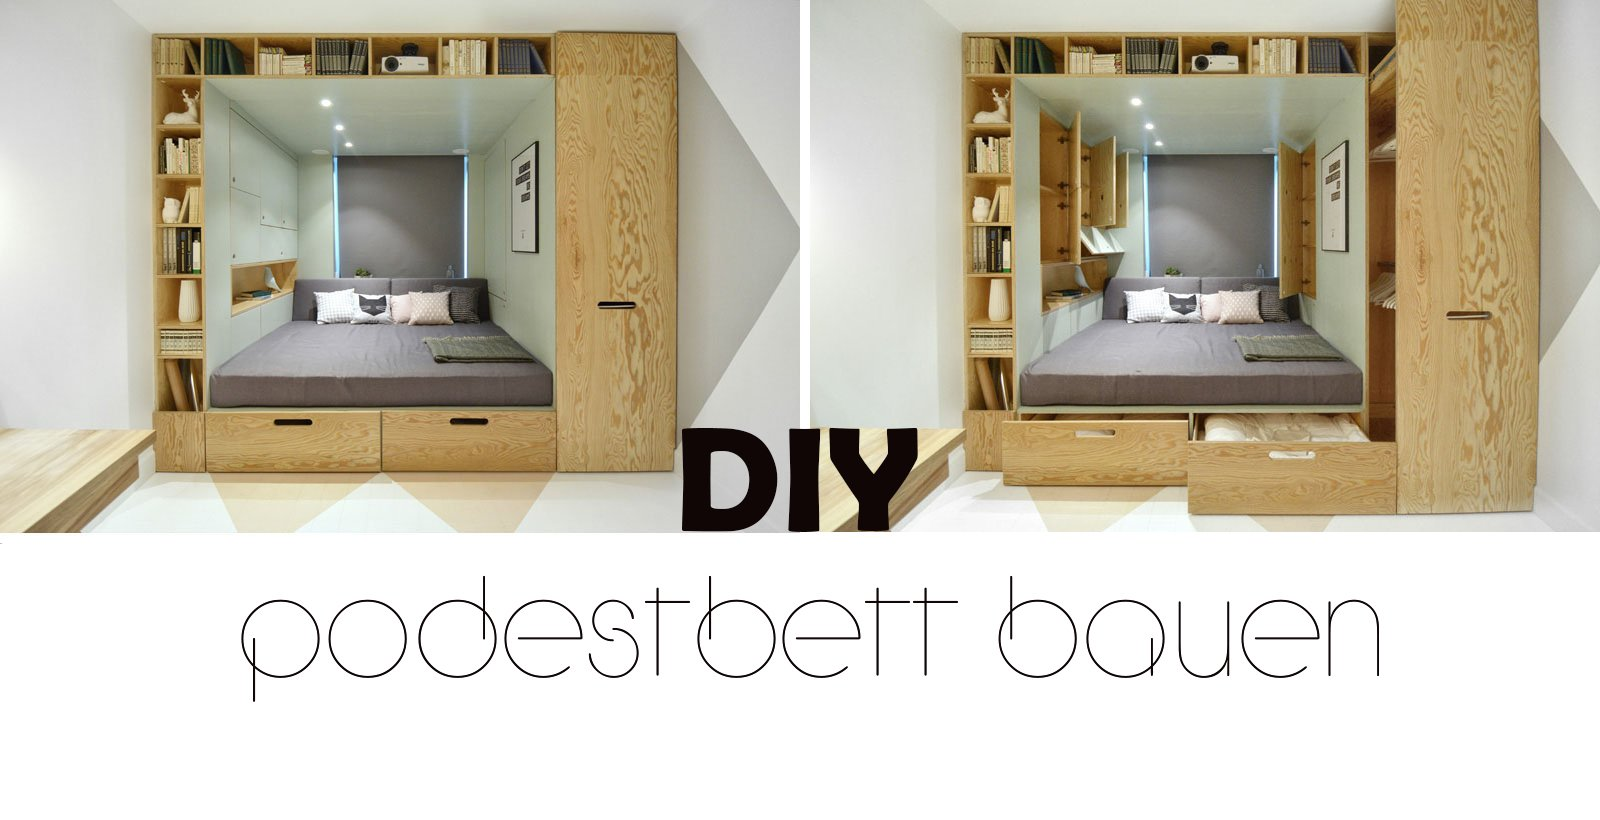 diy podestbett bauen diy innendesign zenideen. Black Bedroom Furniture Sets. Home Design Ideas